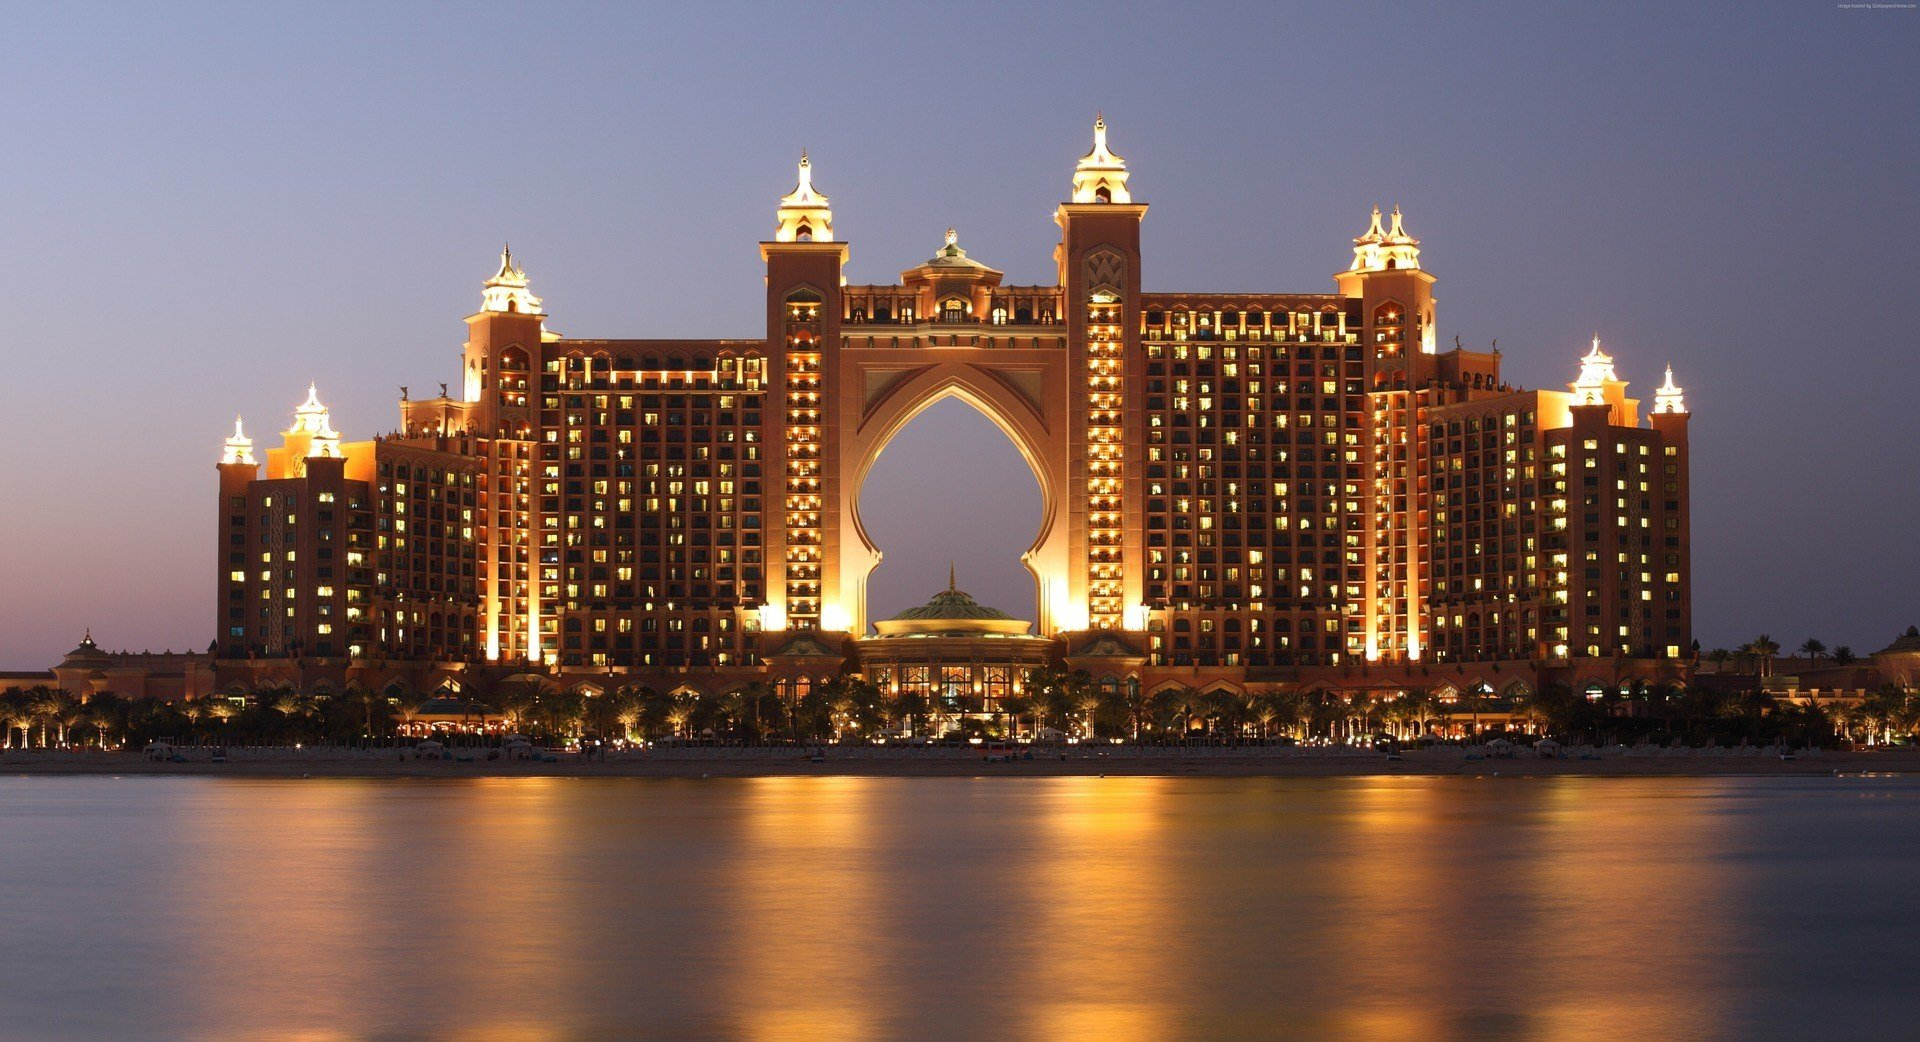 A well-lit buidling in Dubai